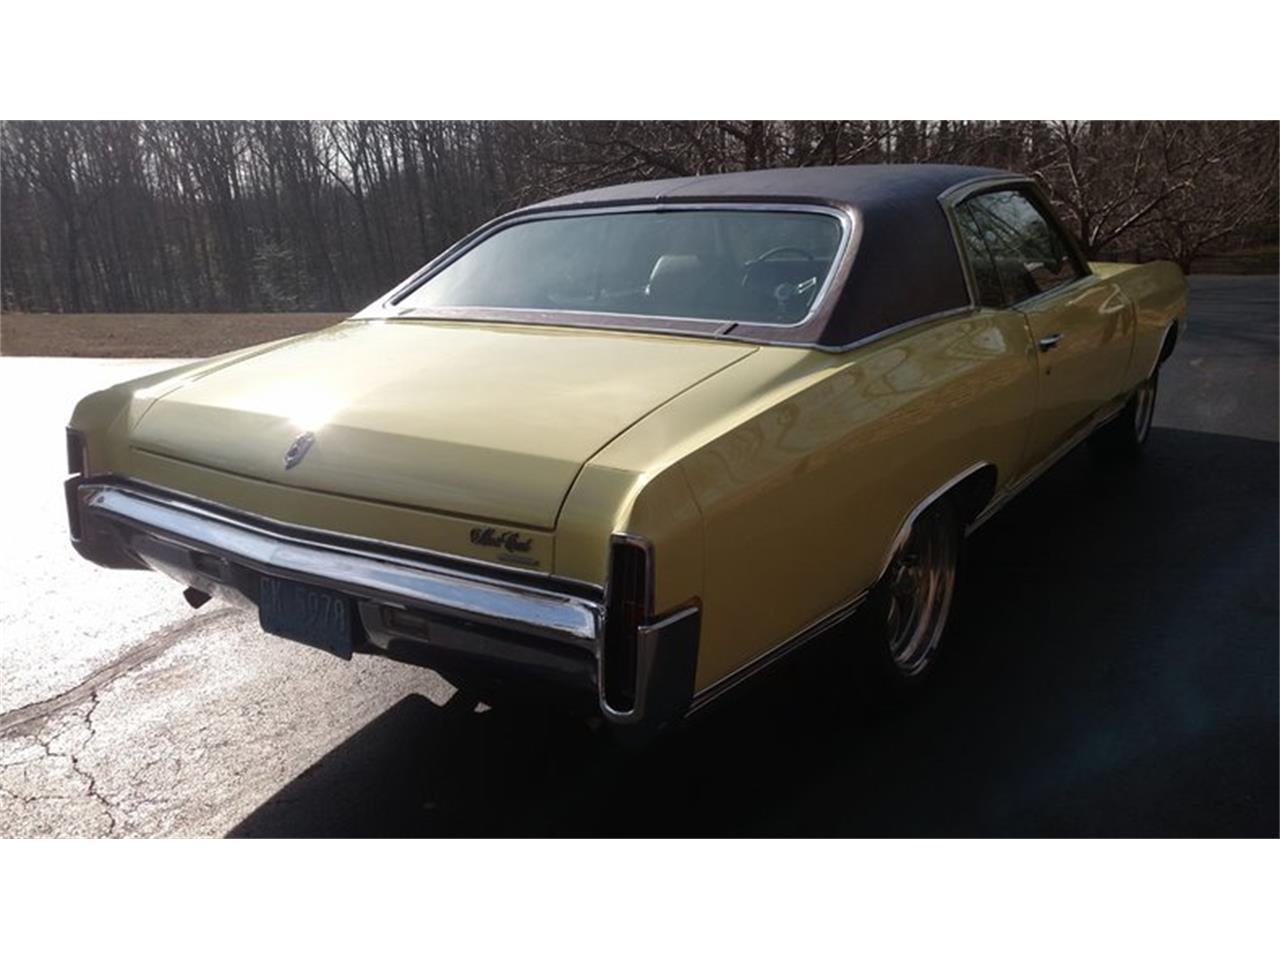 1971 Chevrolet Monte Carlo (CC-1241094) for sale in Huntingtown, Maryland